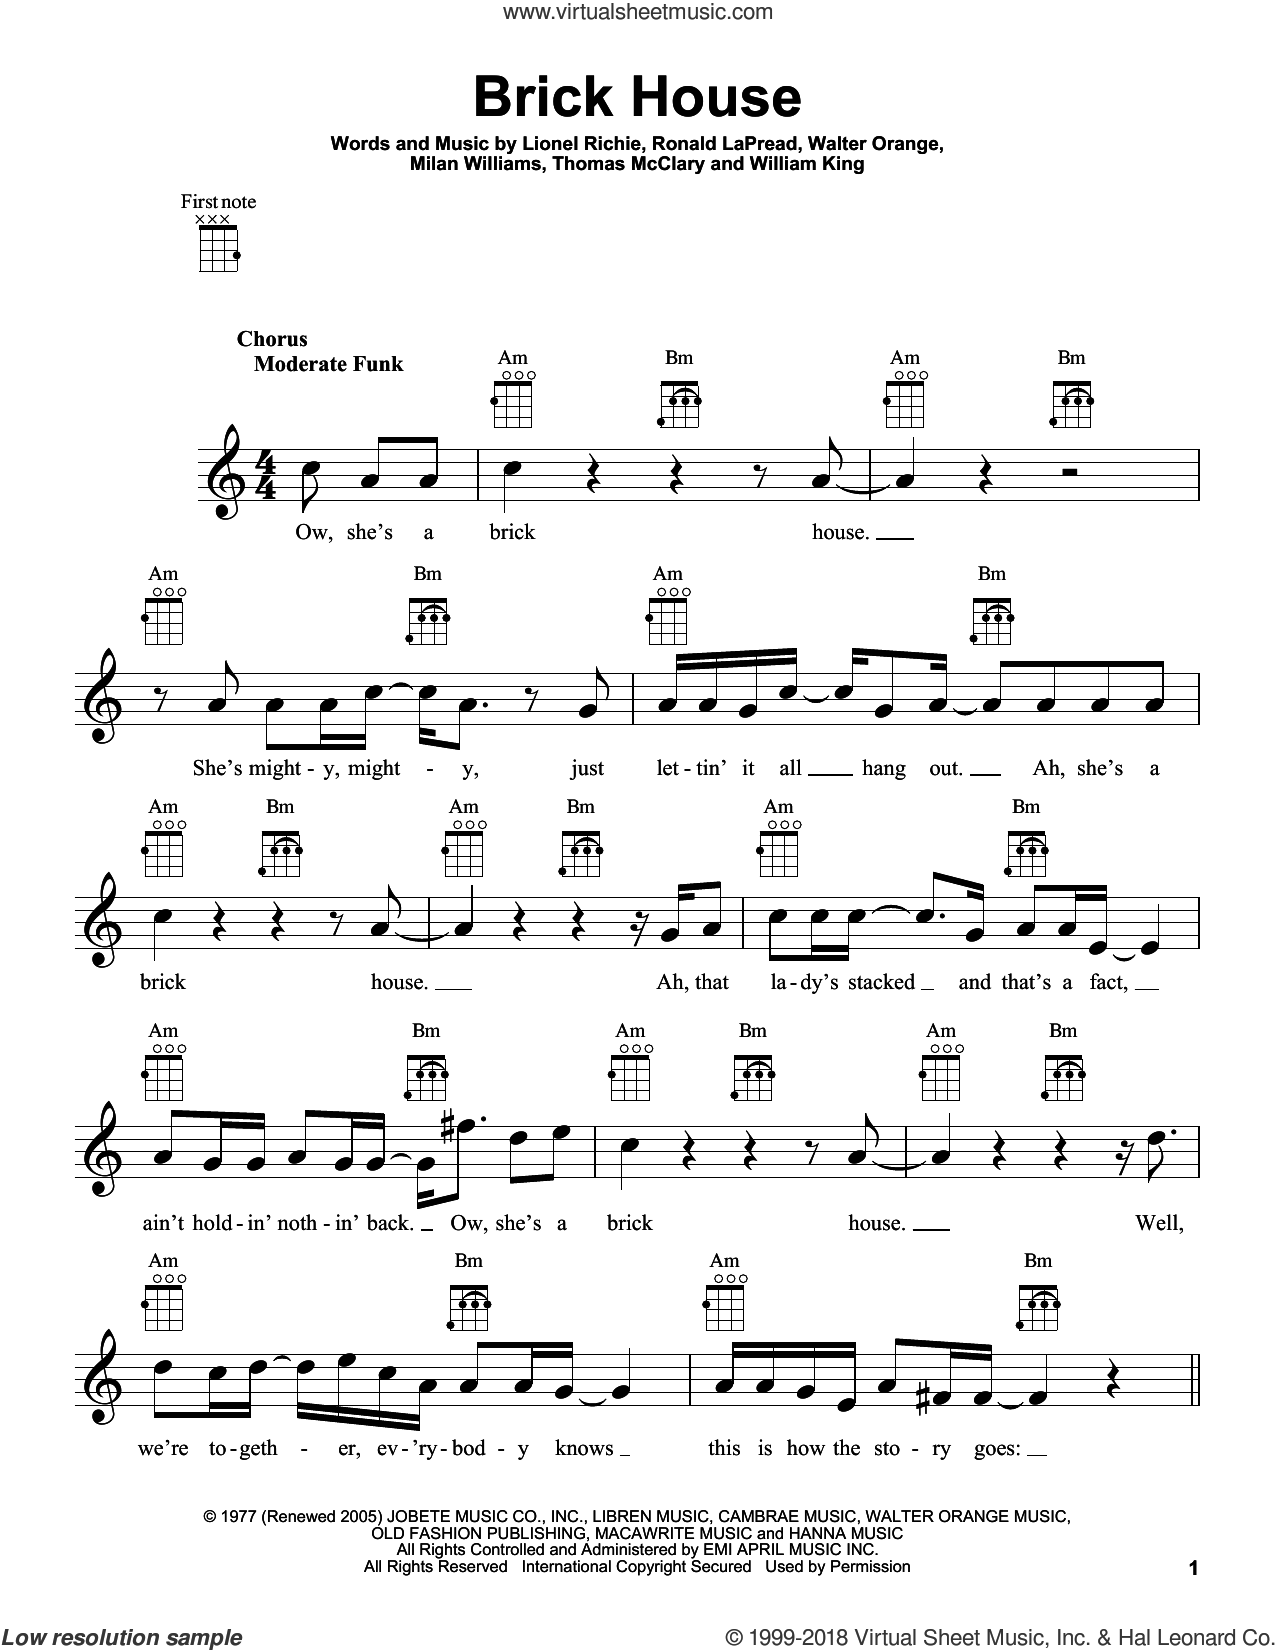 Brick House sheet music for ukulele by William King, Commodores, Lionel Richie, Milan Williams, Ronald LaPread and Walter Orange. Score Image Preview.